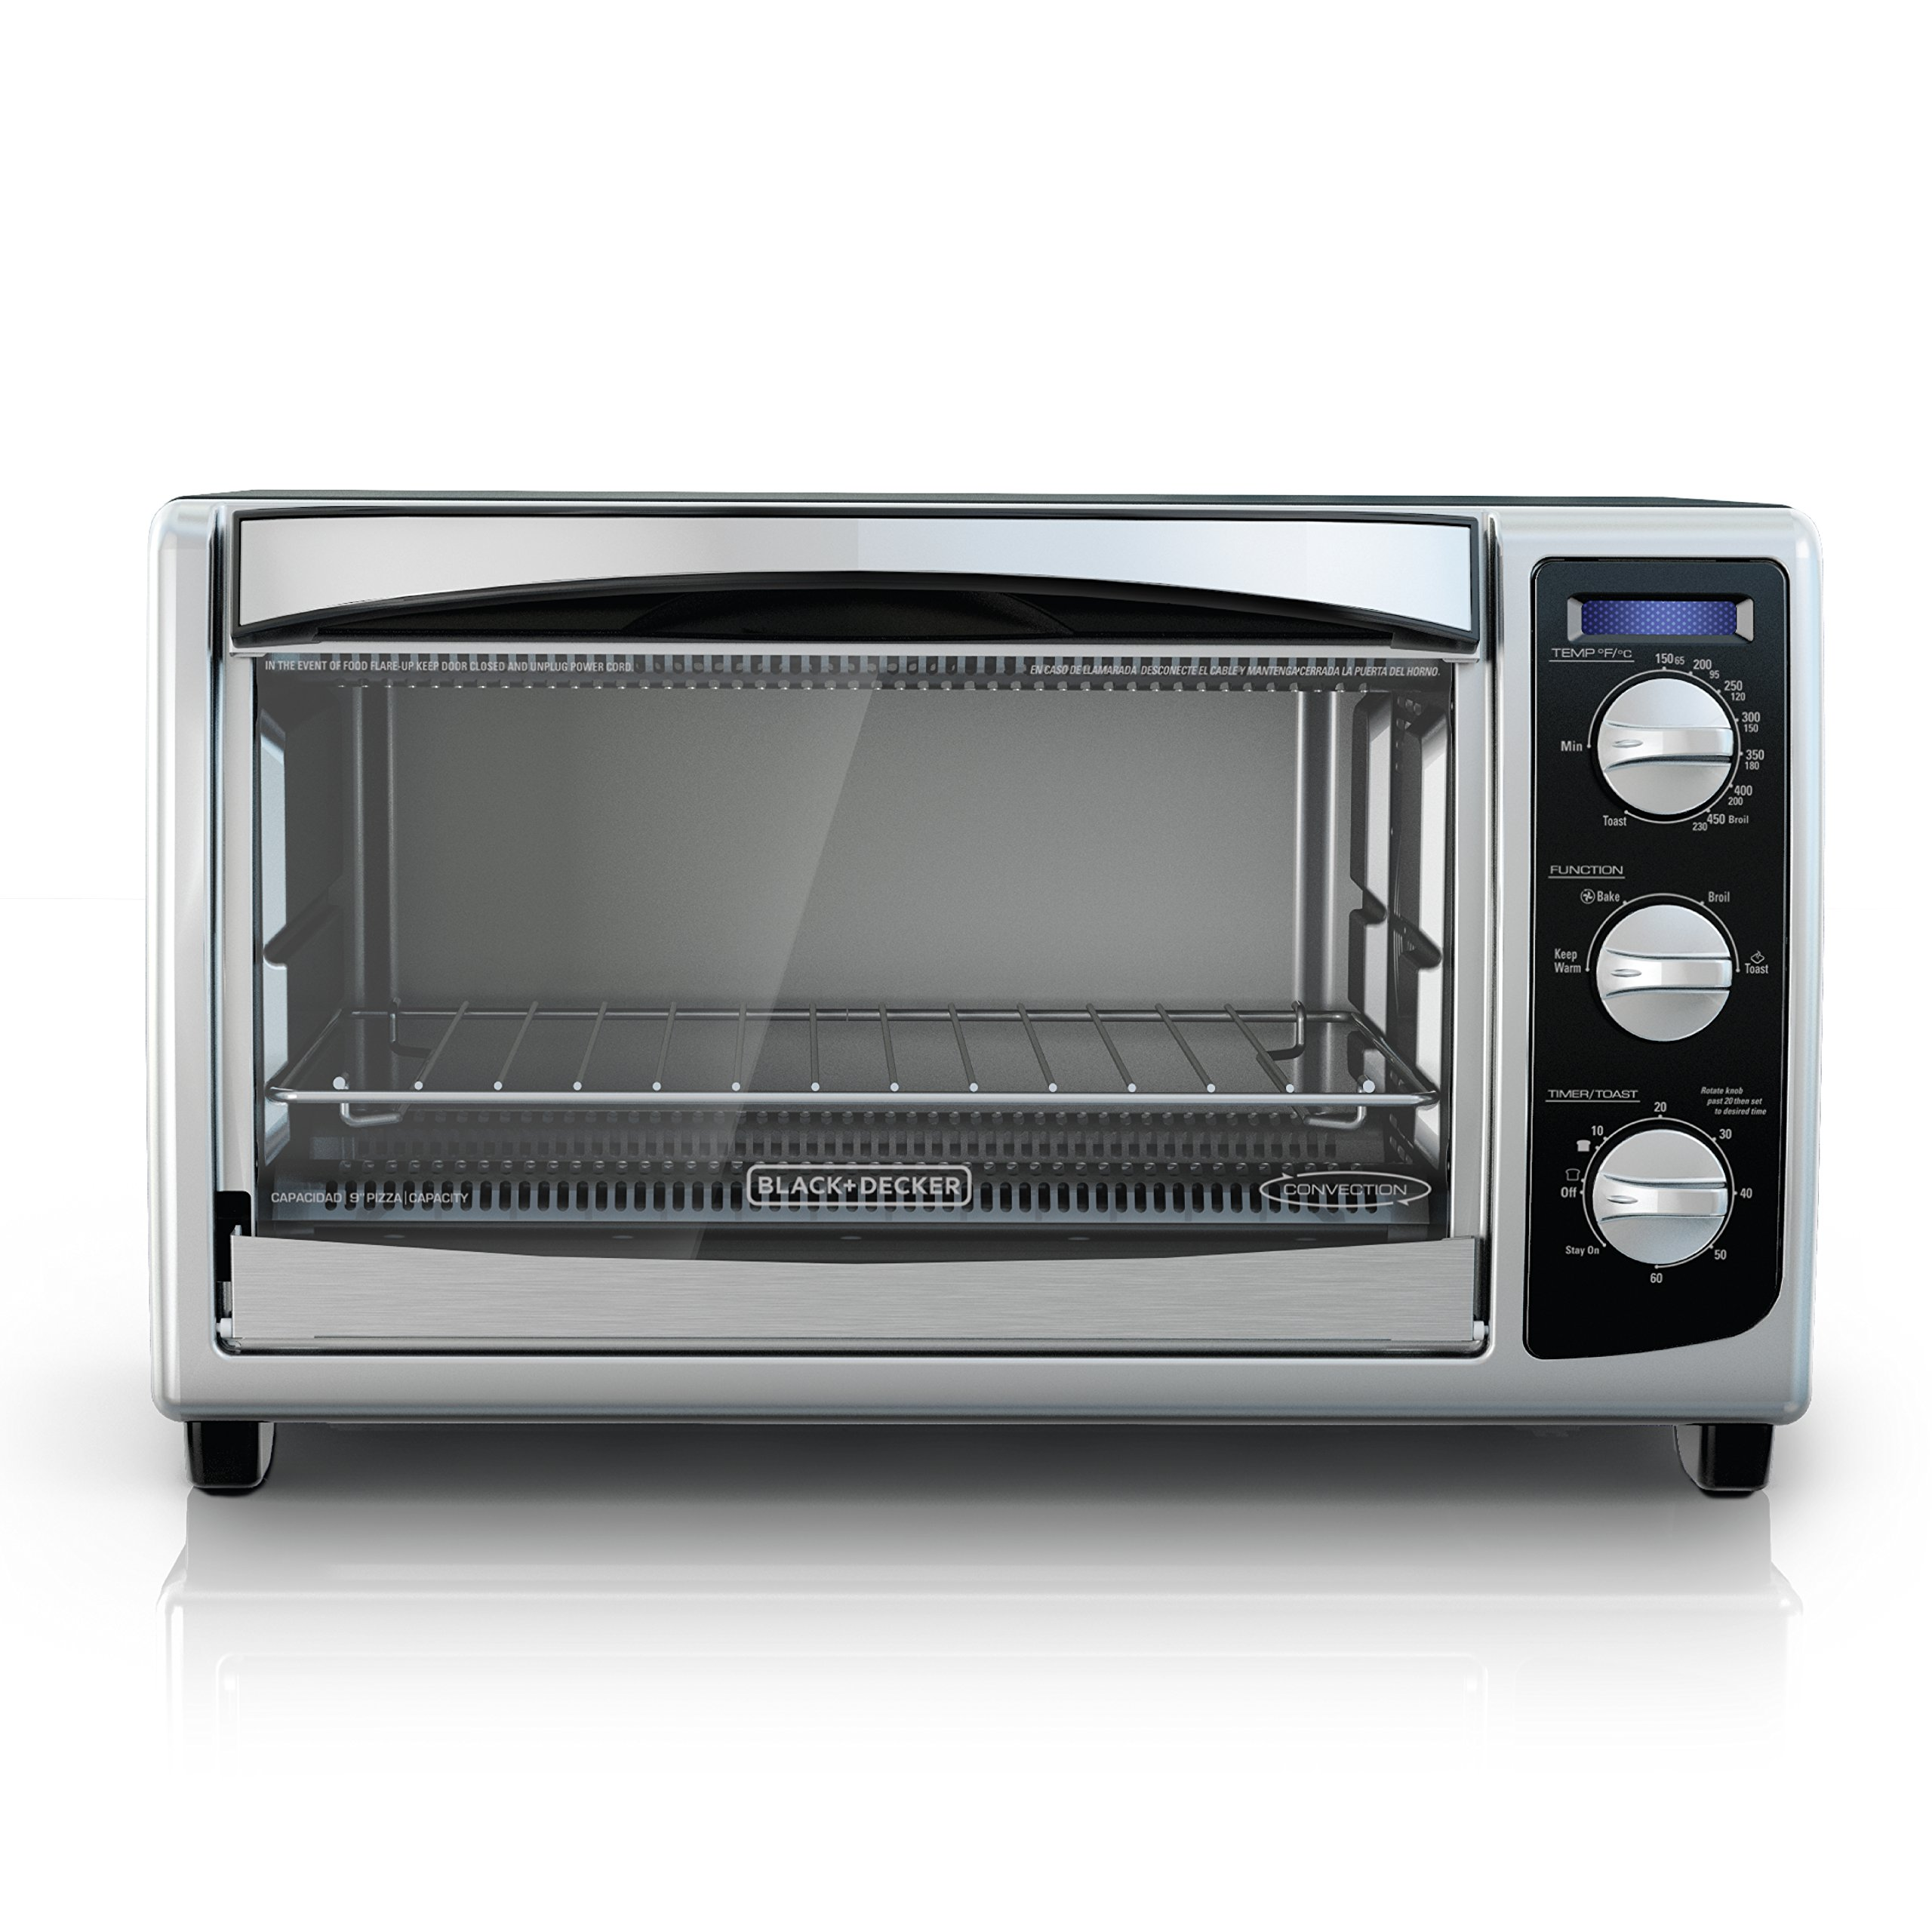 BLACK+DECKER TO1675B 6-Slice Convection Countertop Toaster Oven, Includes Bake Pan, Broil Rack & Toasting Rack, Stainless Steel/Black Convection Toaster Oven